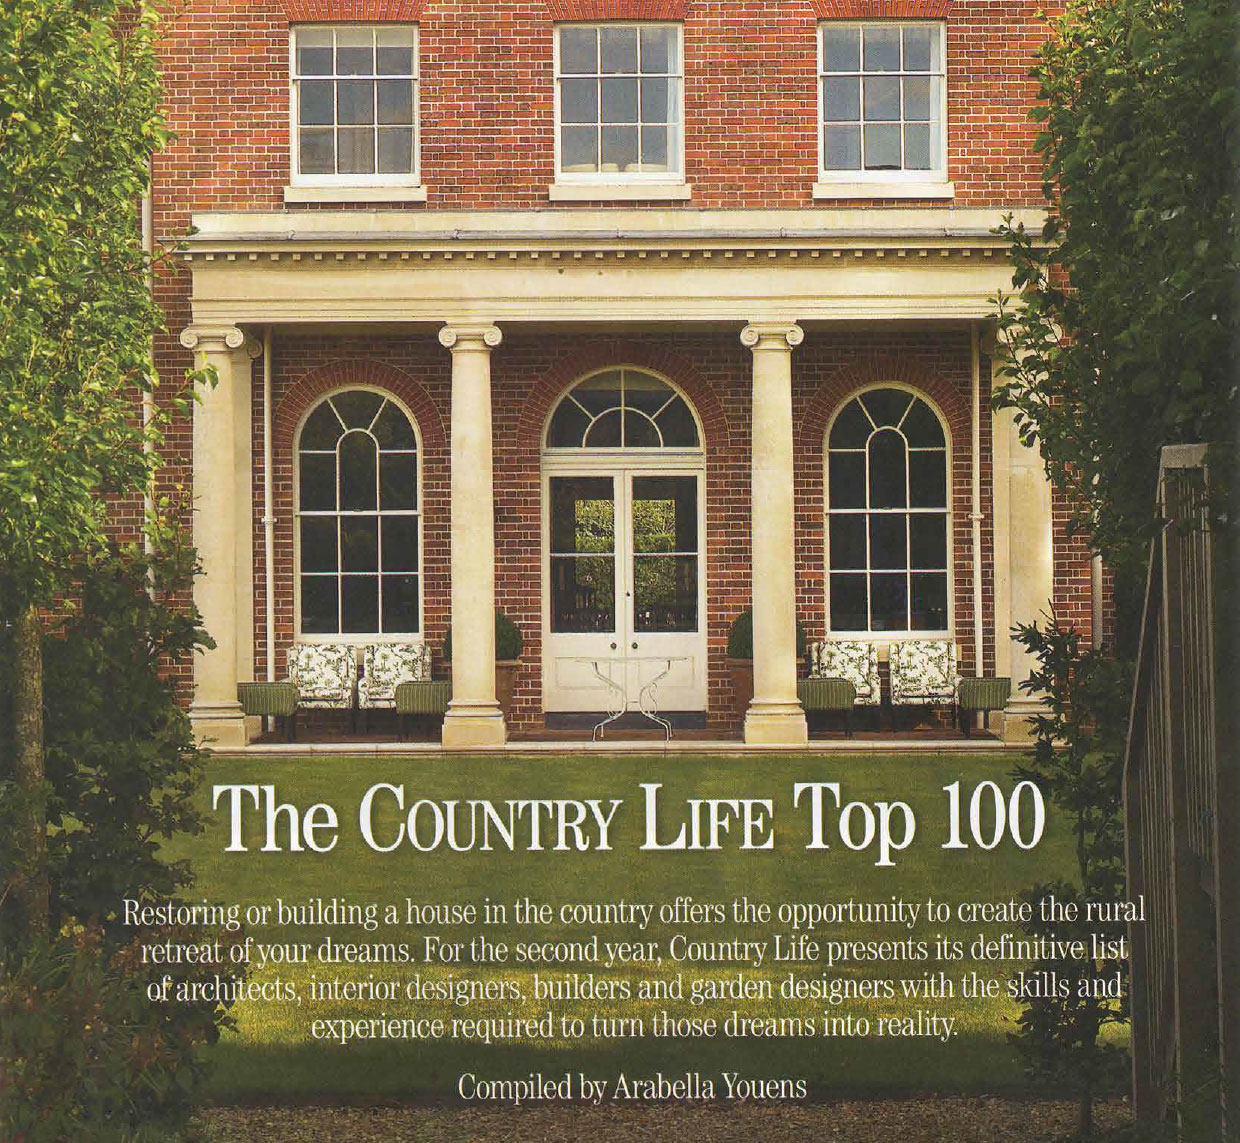 The Country Life Top 100 - Country Life - ADAM Architecture